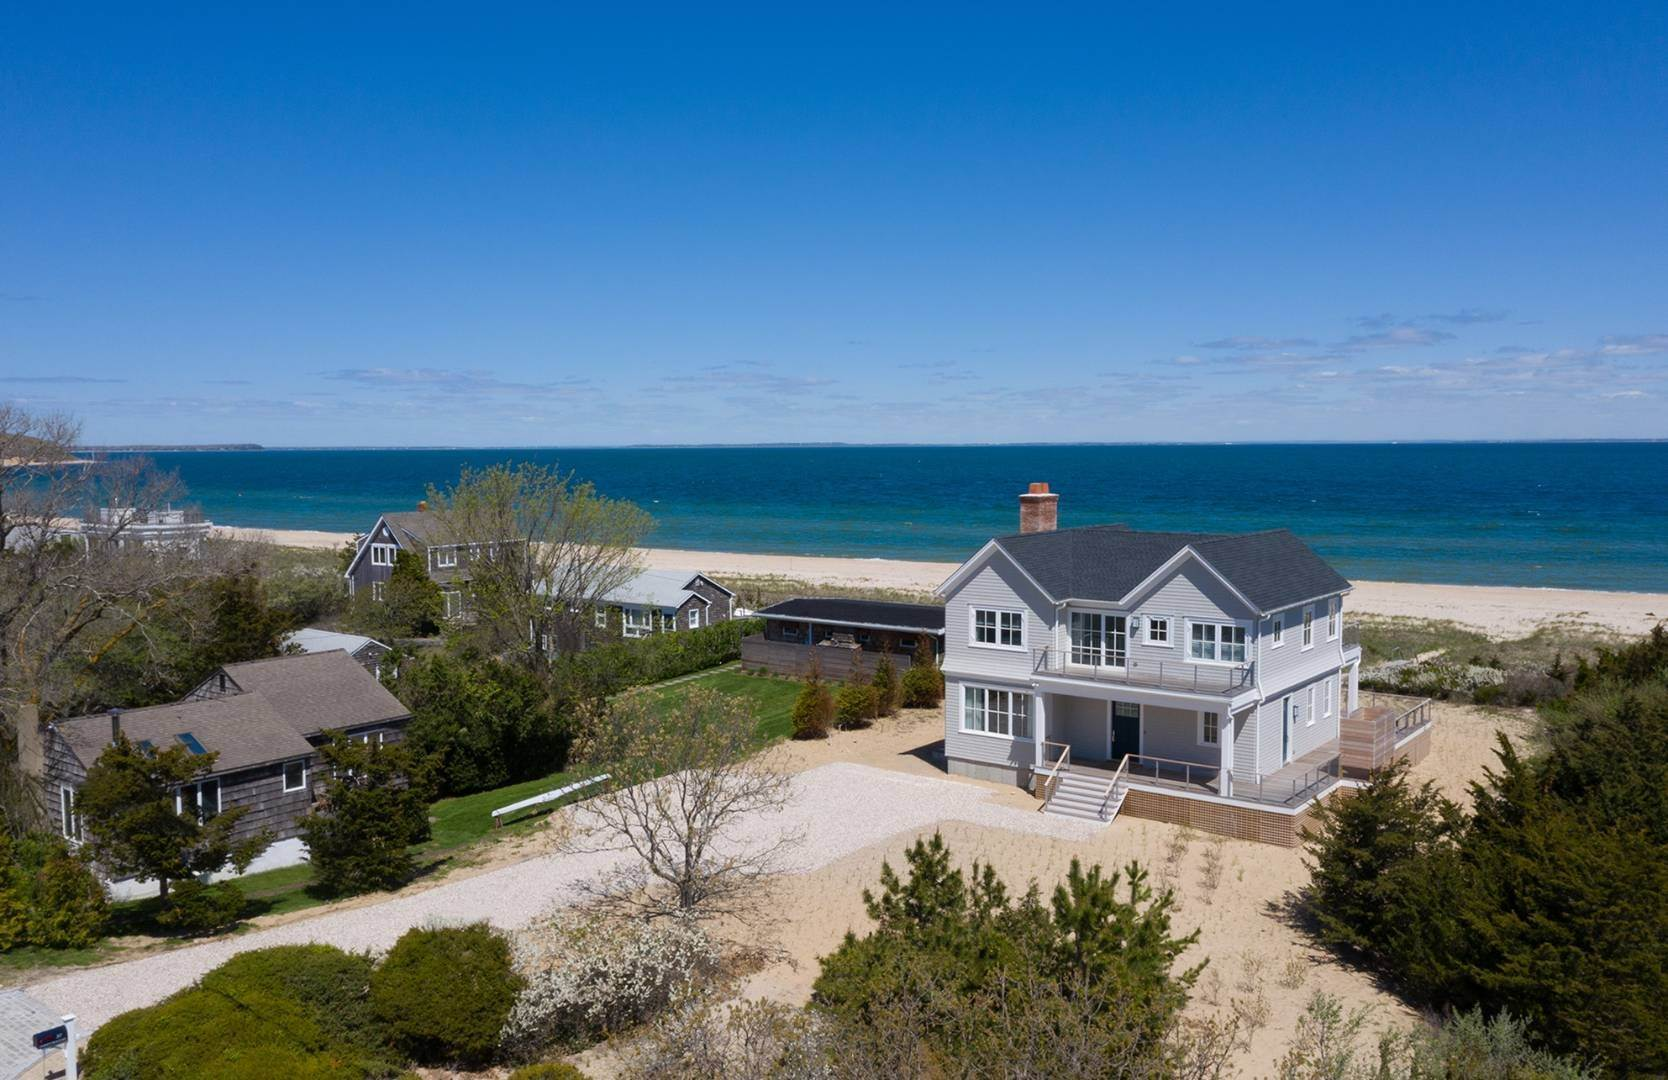 Single Family Home for Sale at Northwest Potential 5 Sammys Beach Road, East Hampton, NY 11937